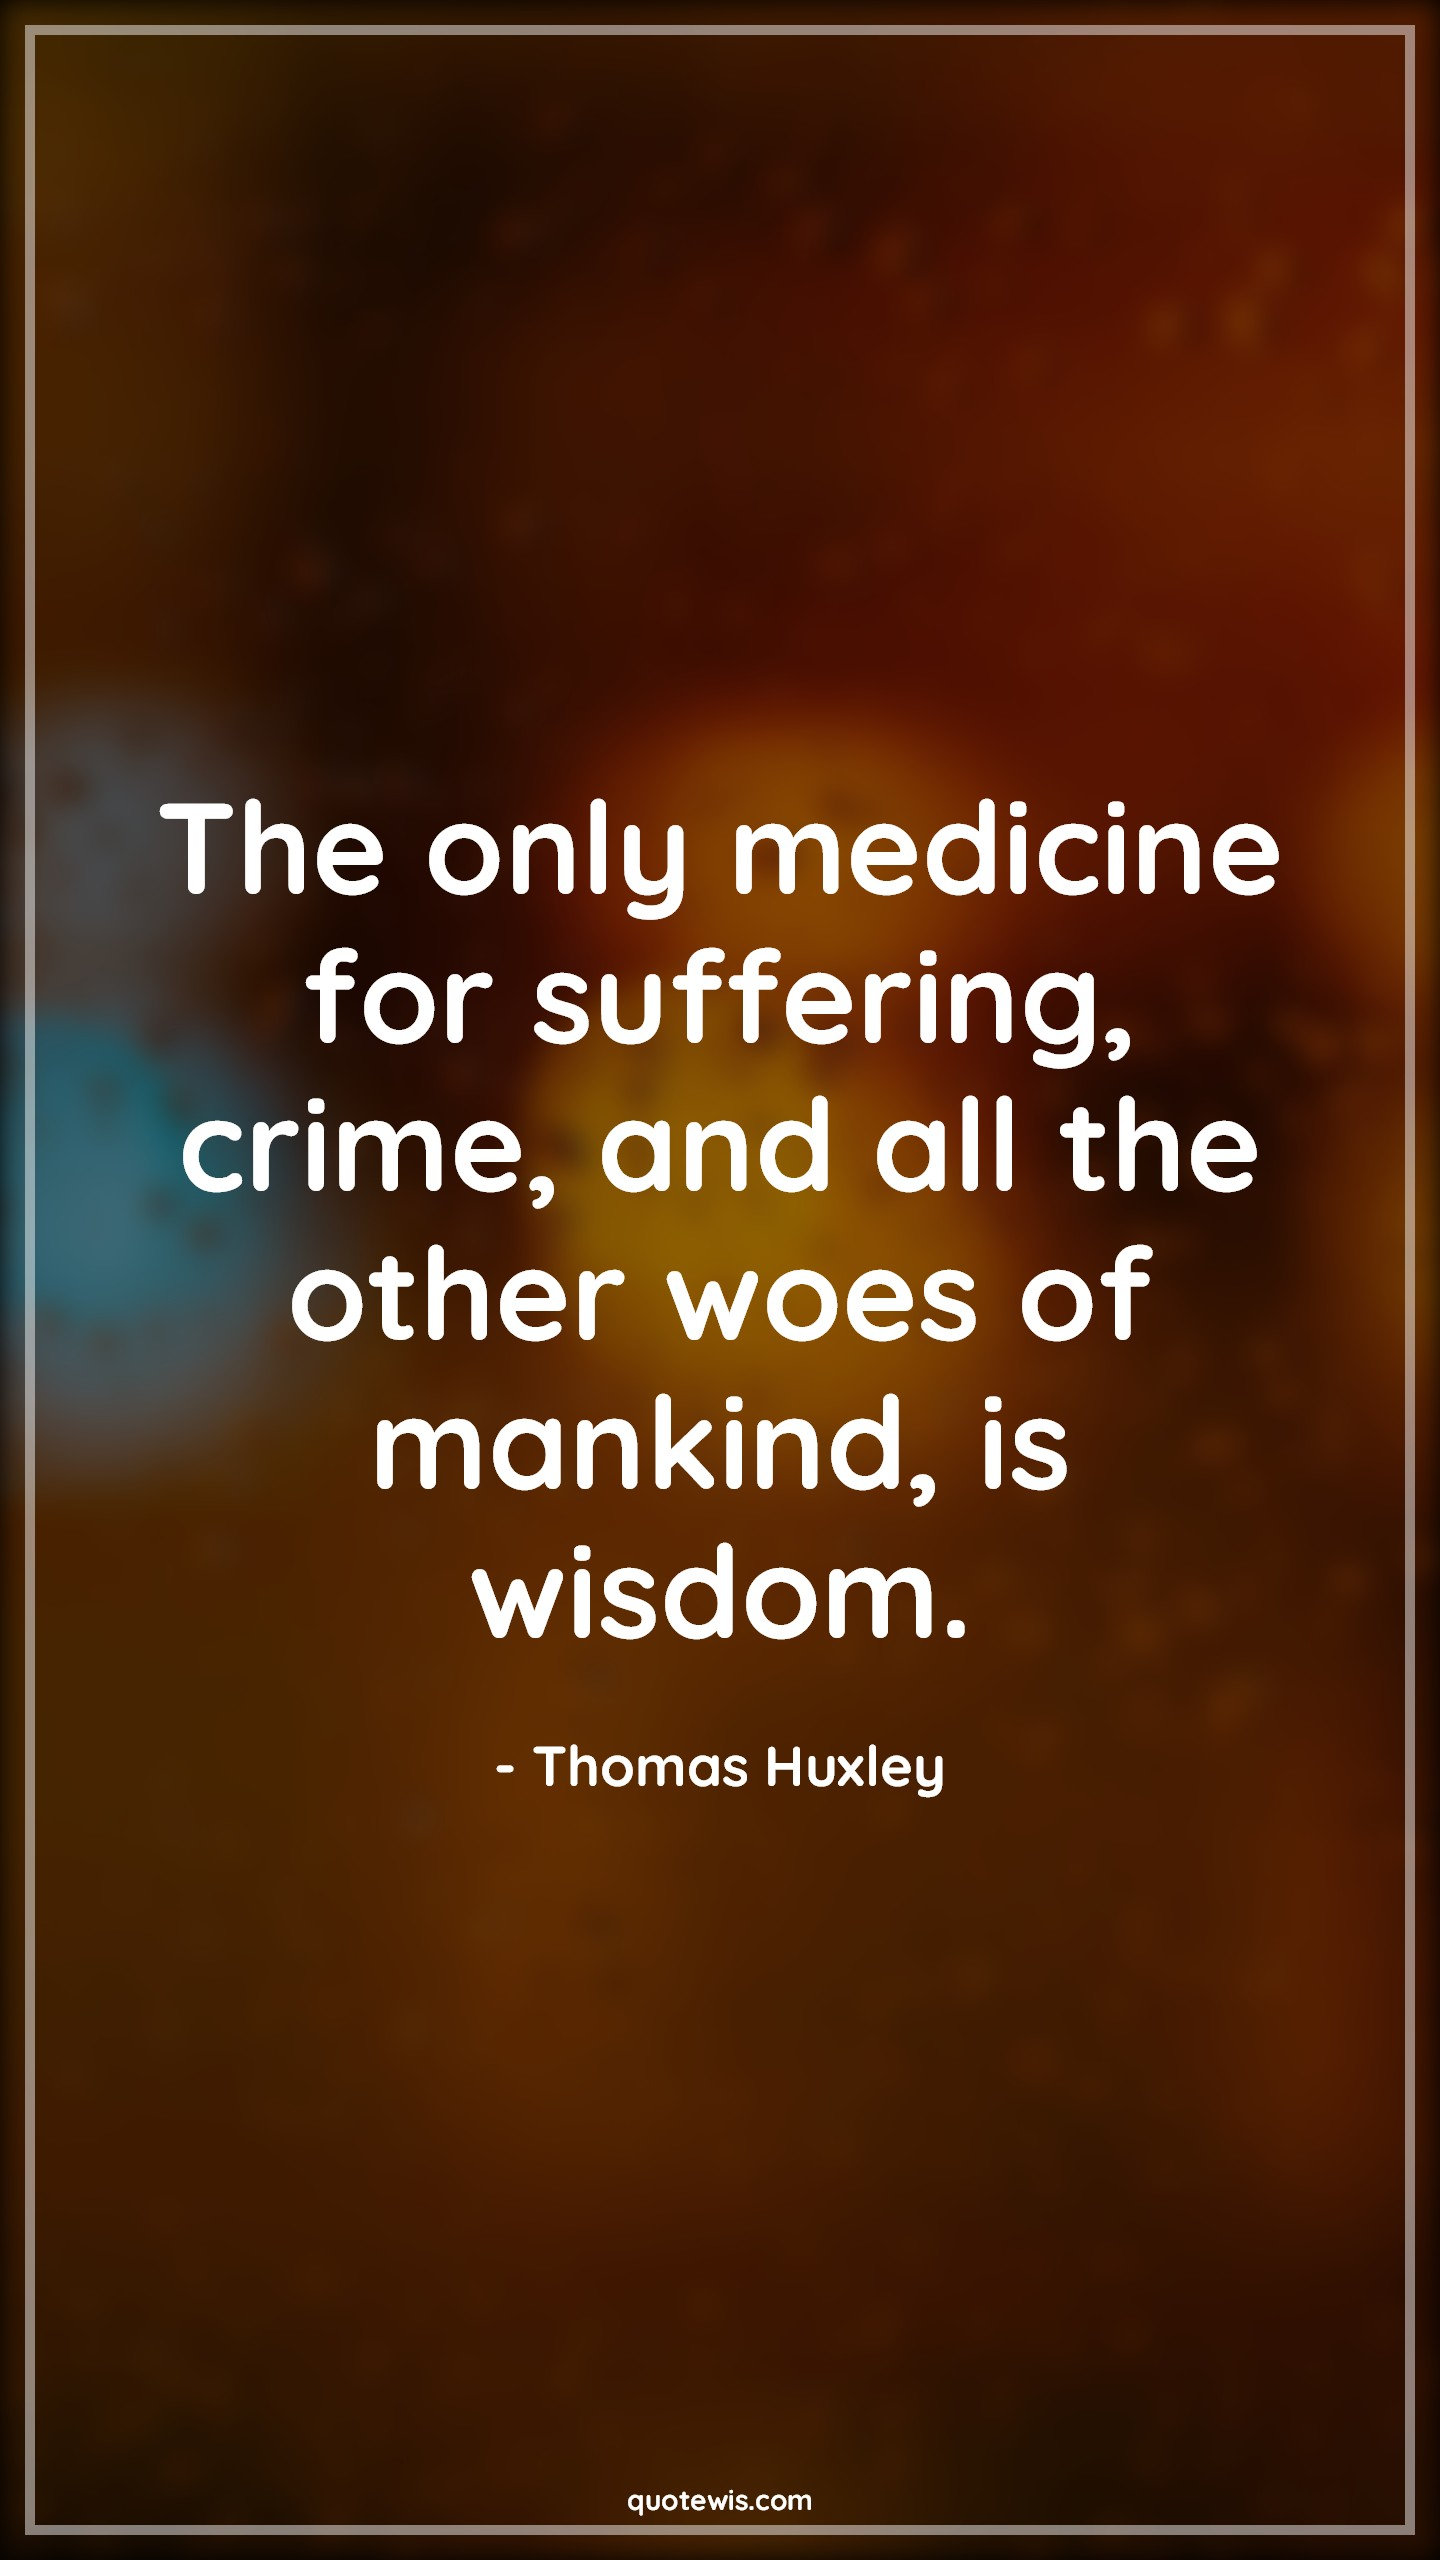 The only medicine for suffering, crime, and all the other woes of mankind, is wisdom.